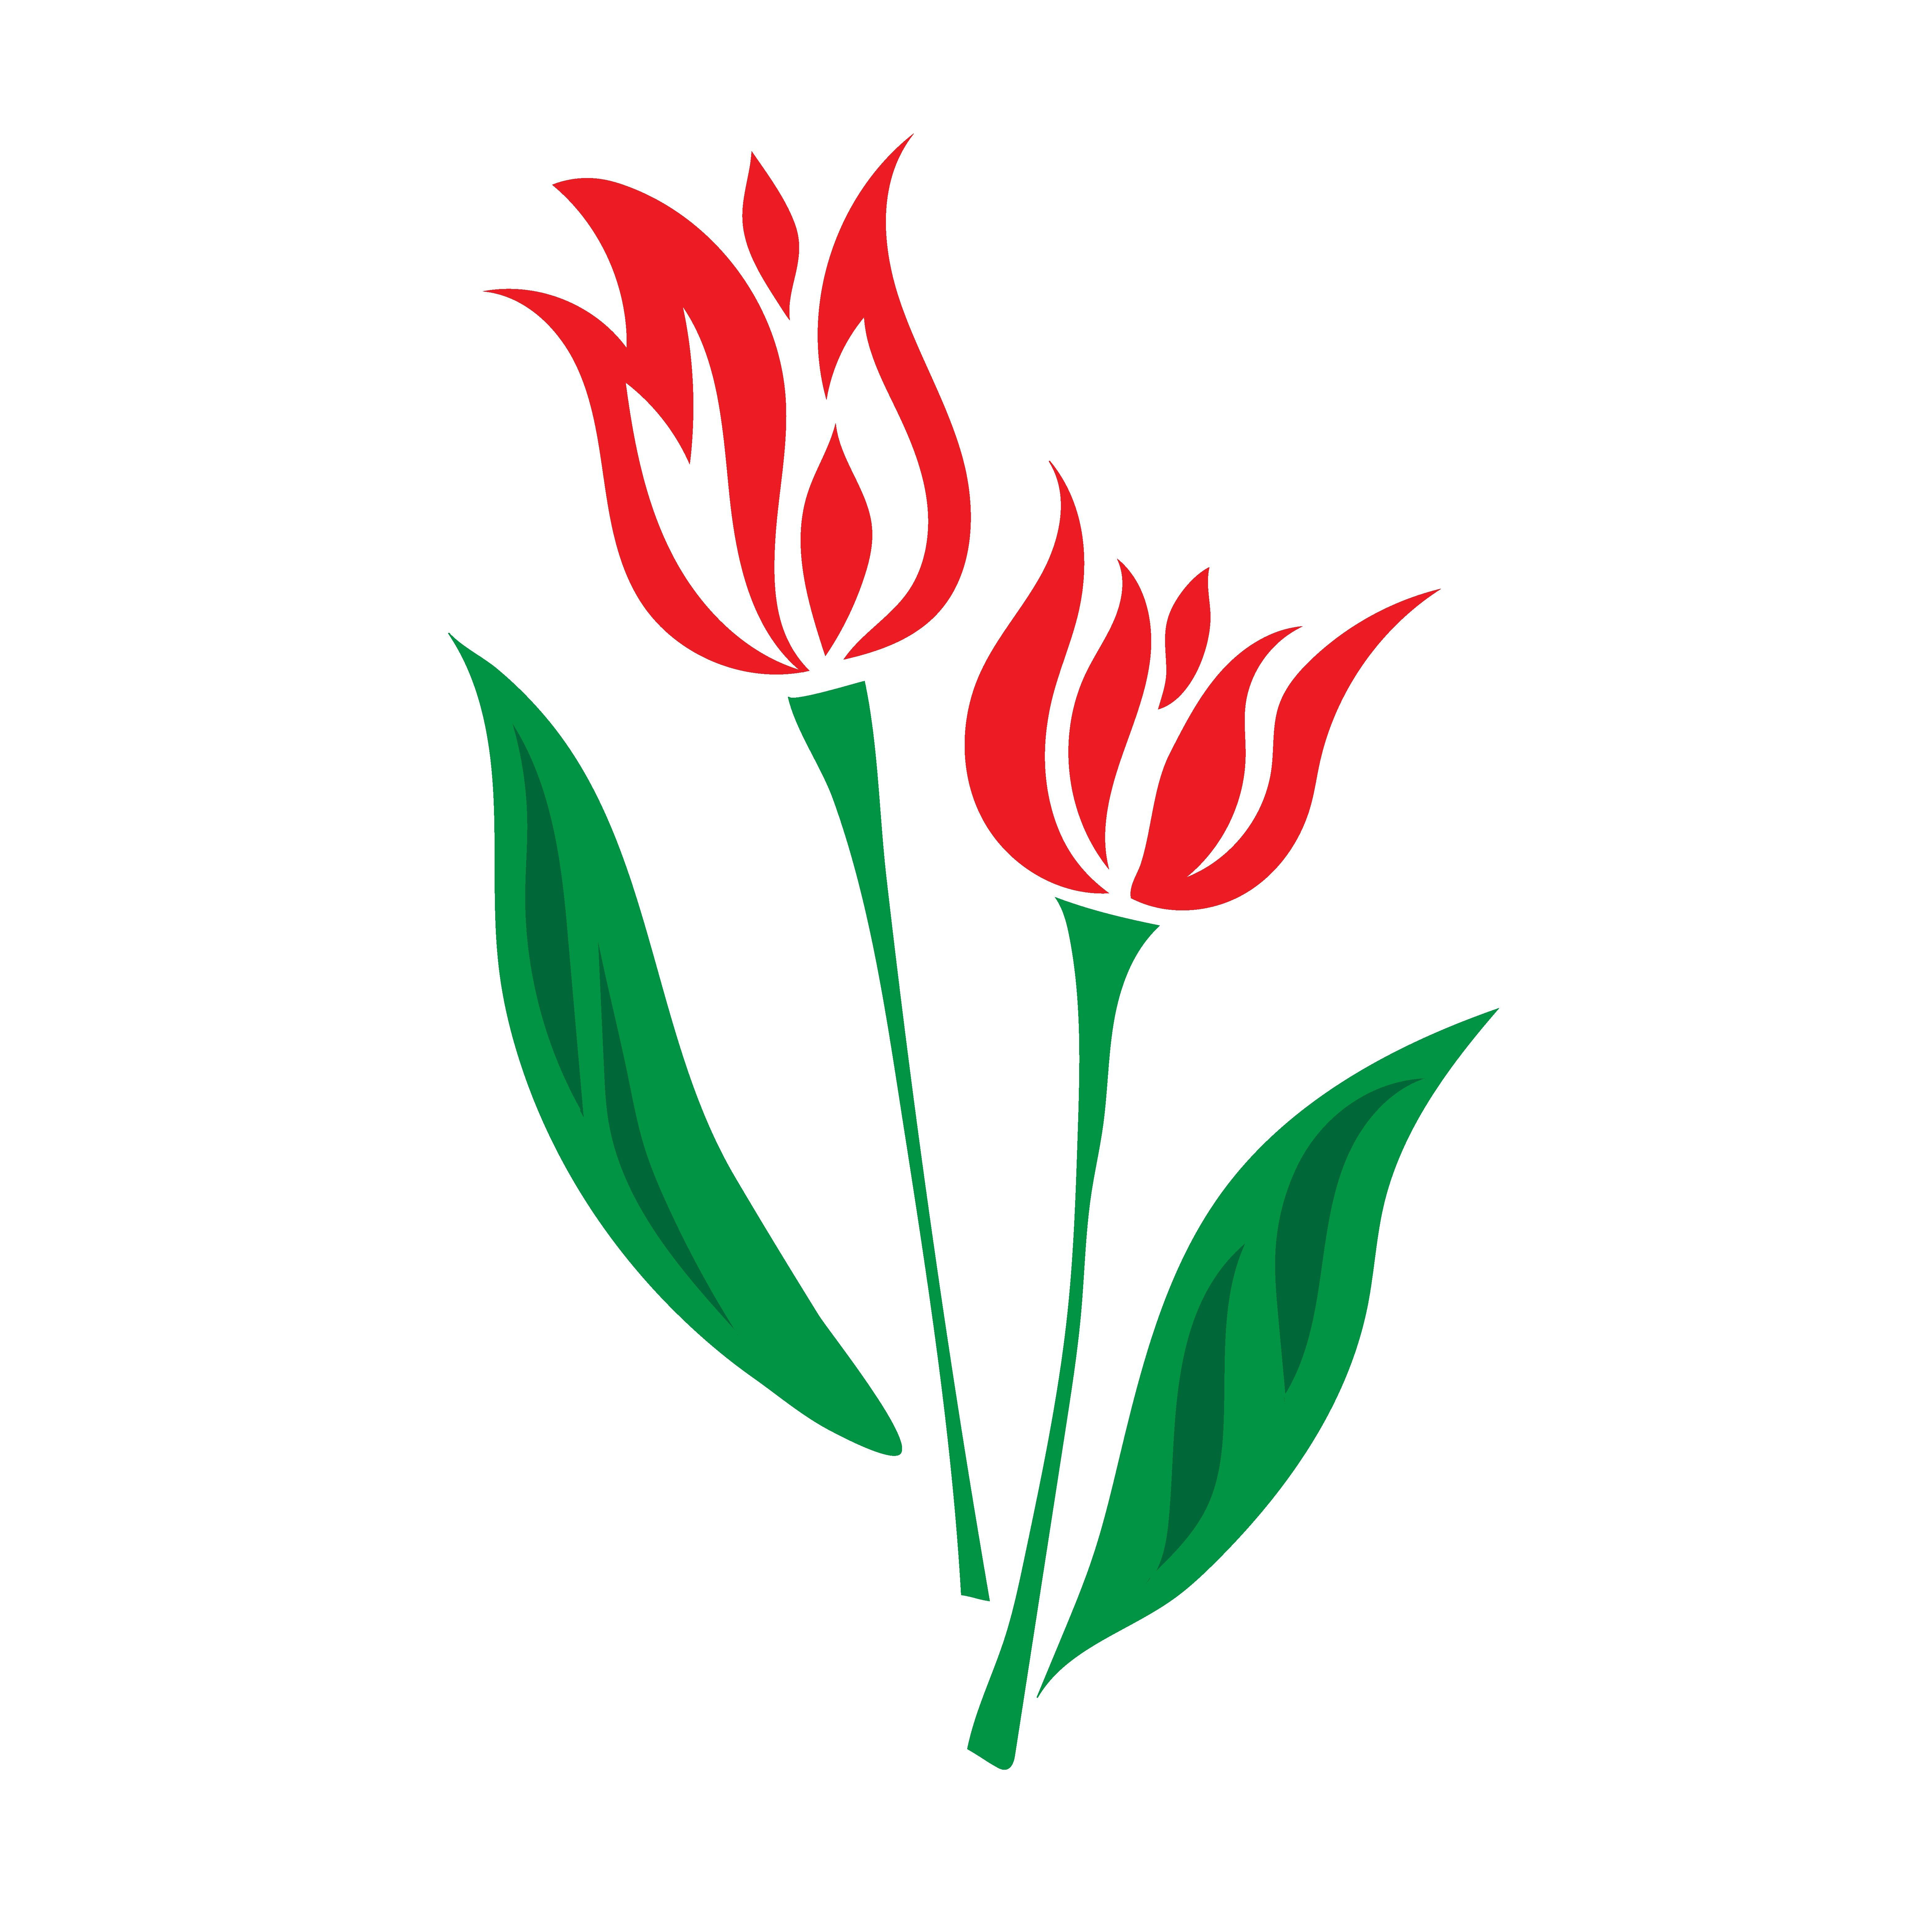 tulip vector icon tulips art tulip drawing floral border design pinterest